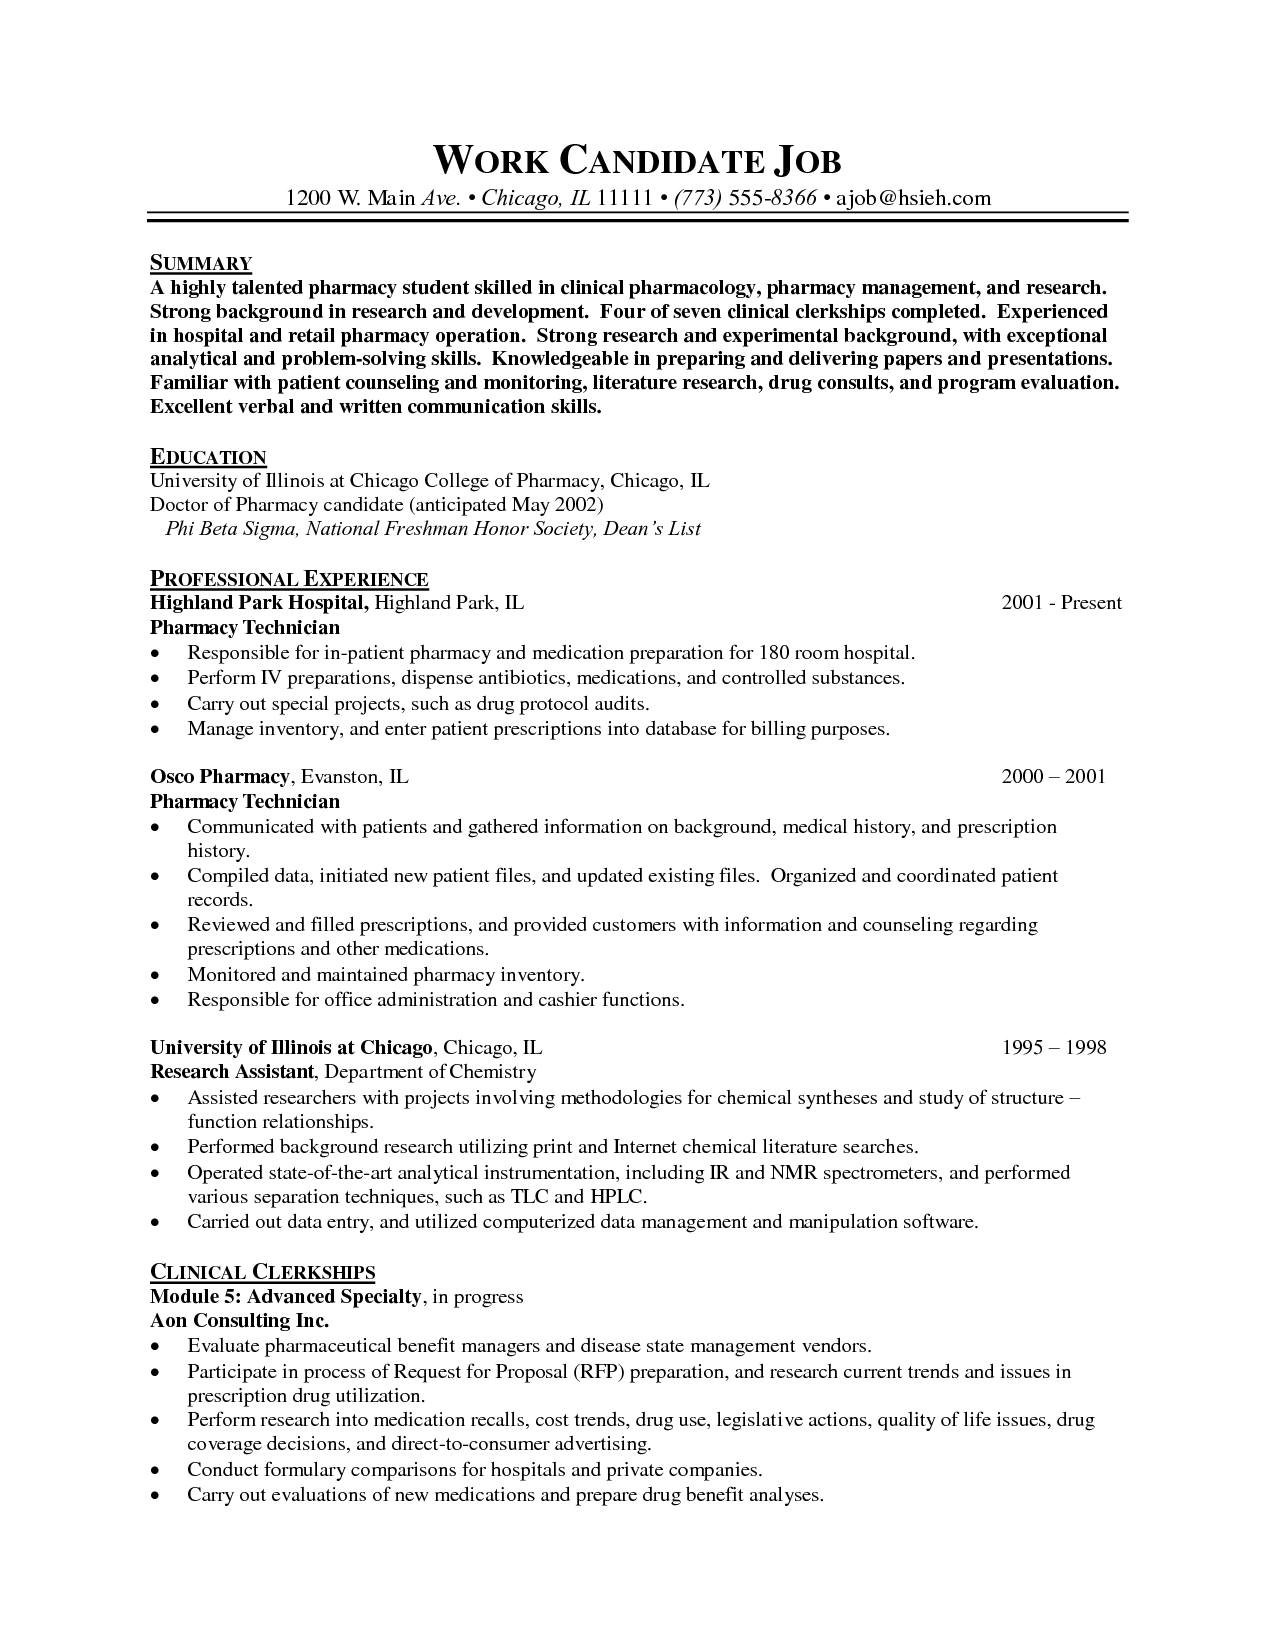 Surgical Technologist Resume resume examples for scrub tech Surgical Tech Resume Tech Resume Tips